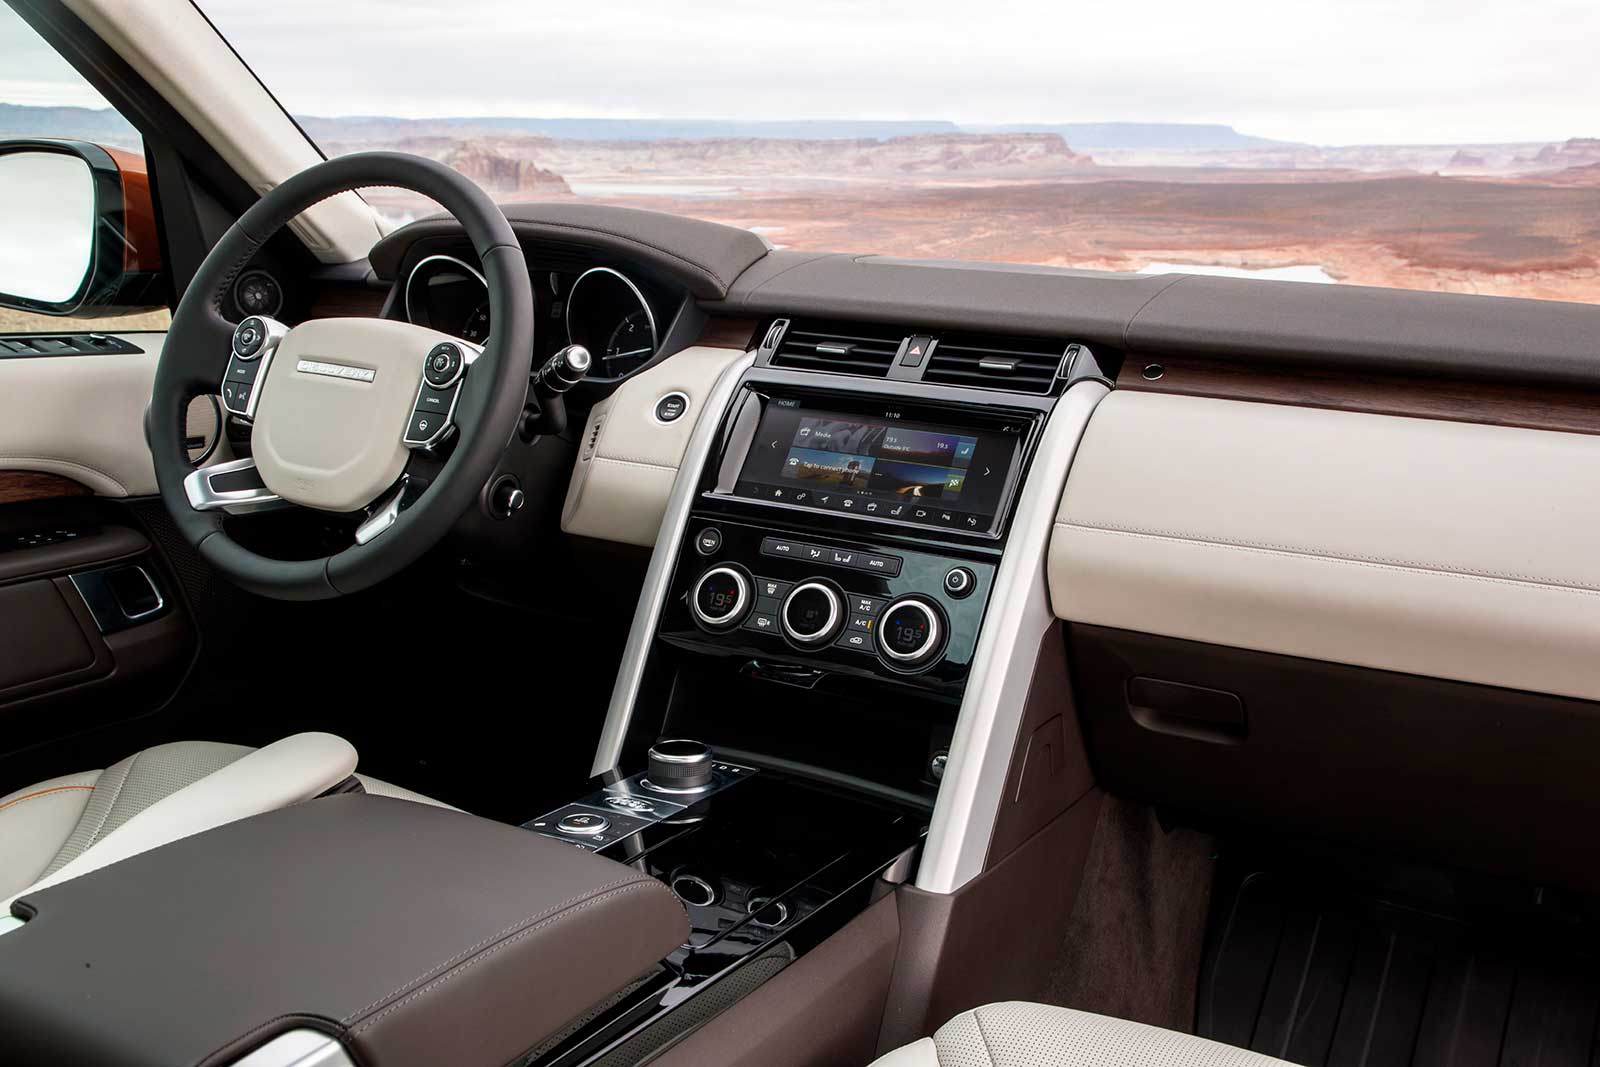 2017 Land Rover Discovery Sel Interior 01